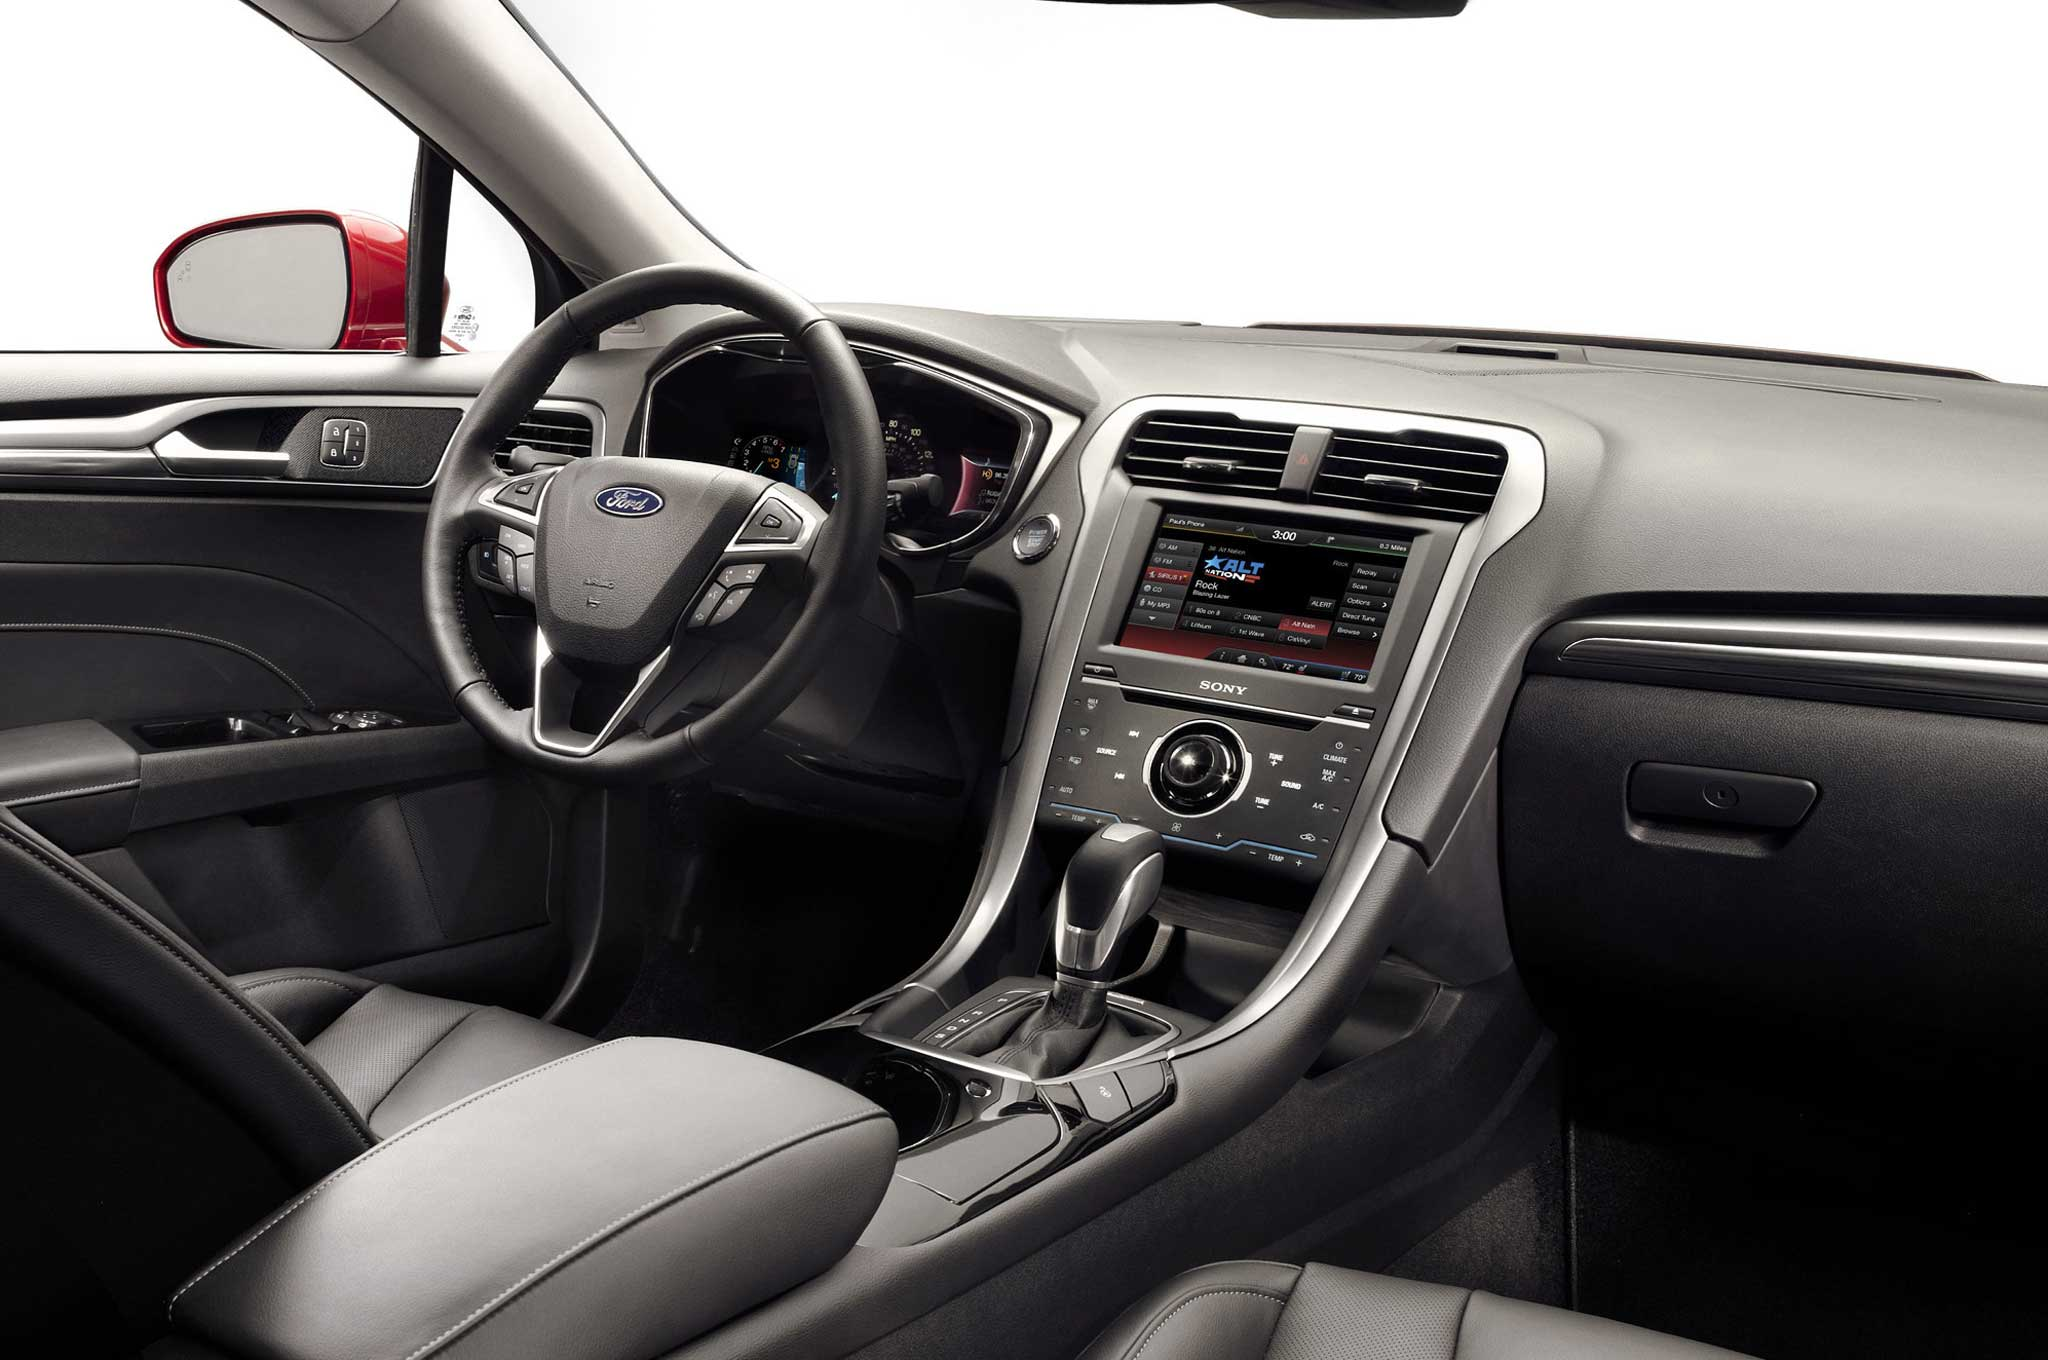 2014 Ford Fusion 1 5 Liter Engine Specifications Confirmed